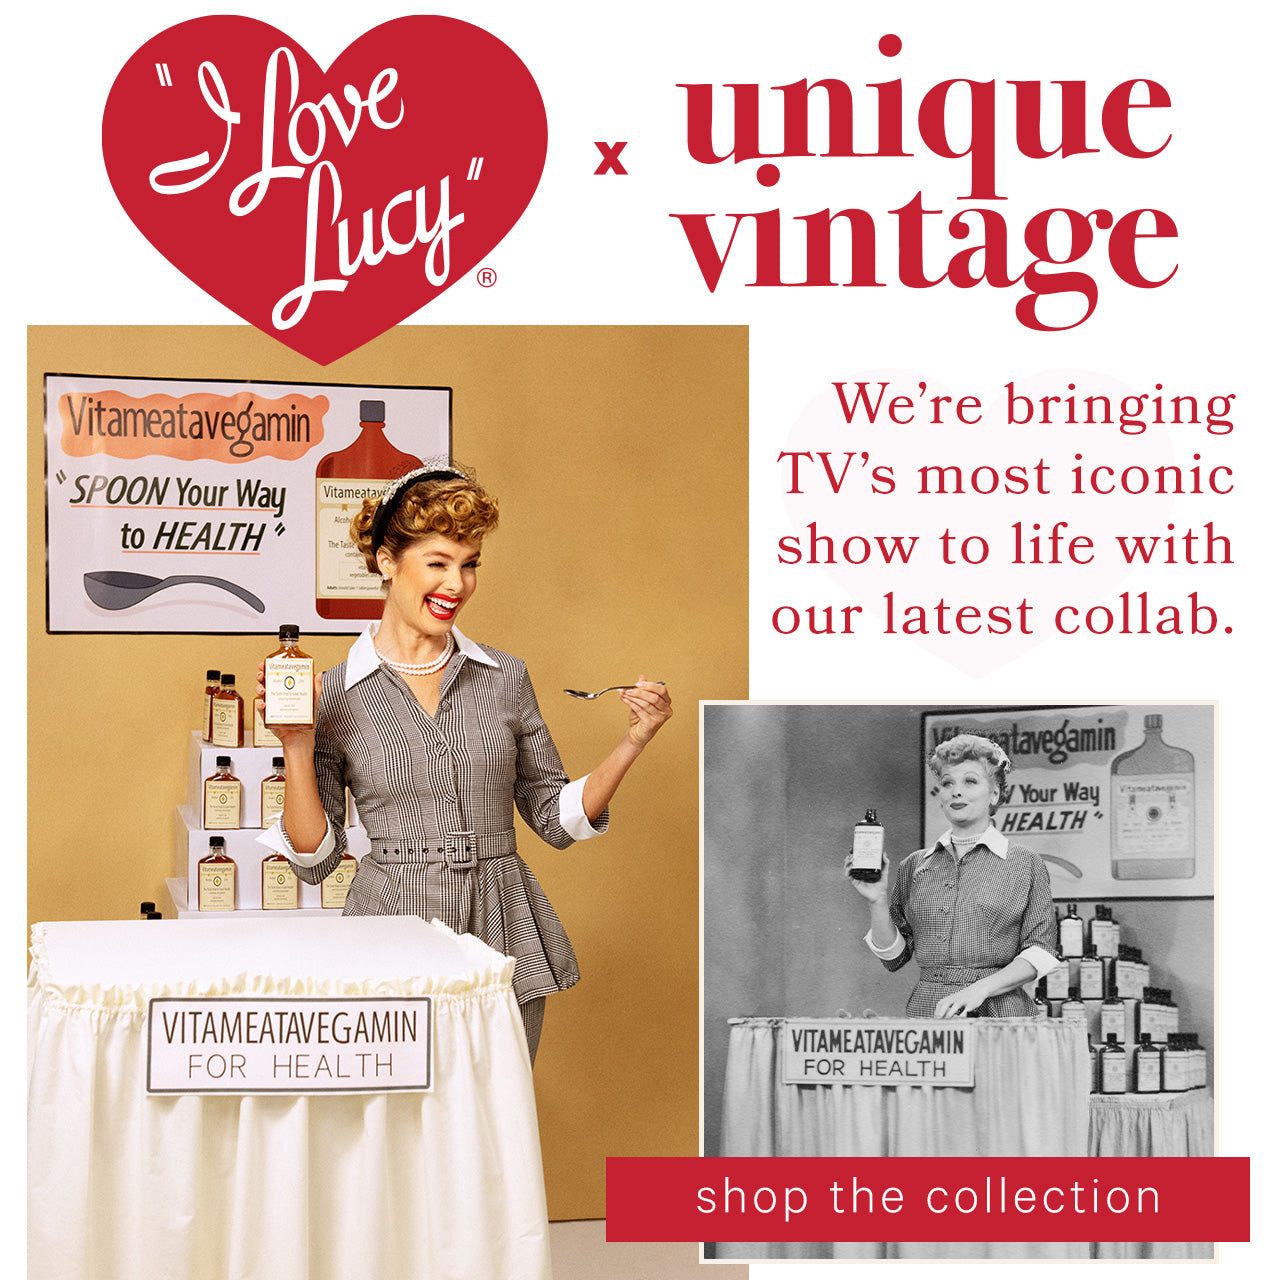 Unique Vintage — I Love Lucy x Unique Vintage